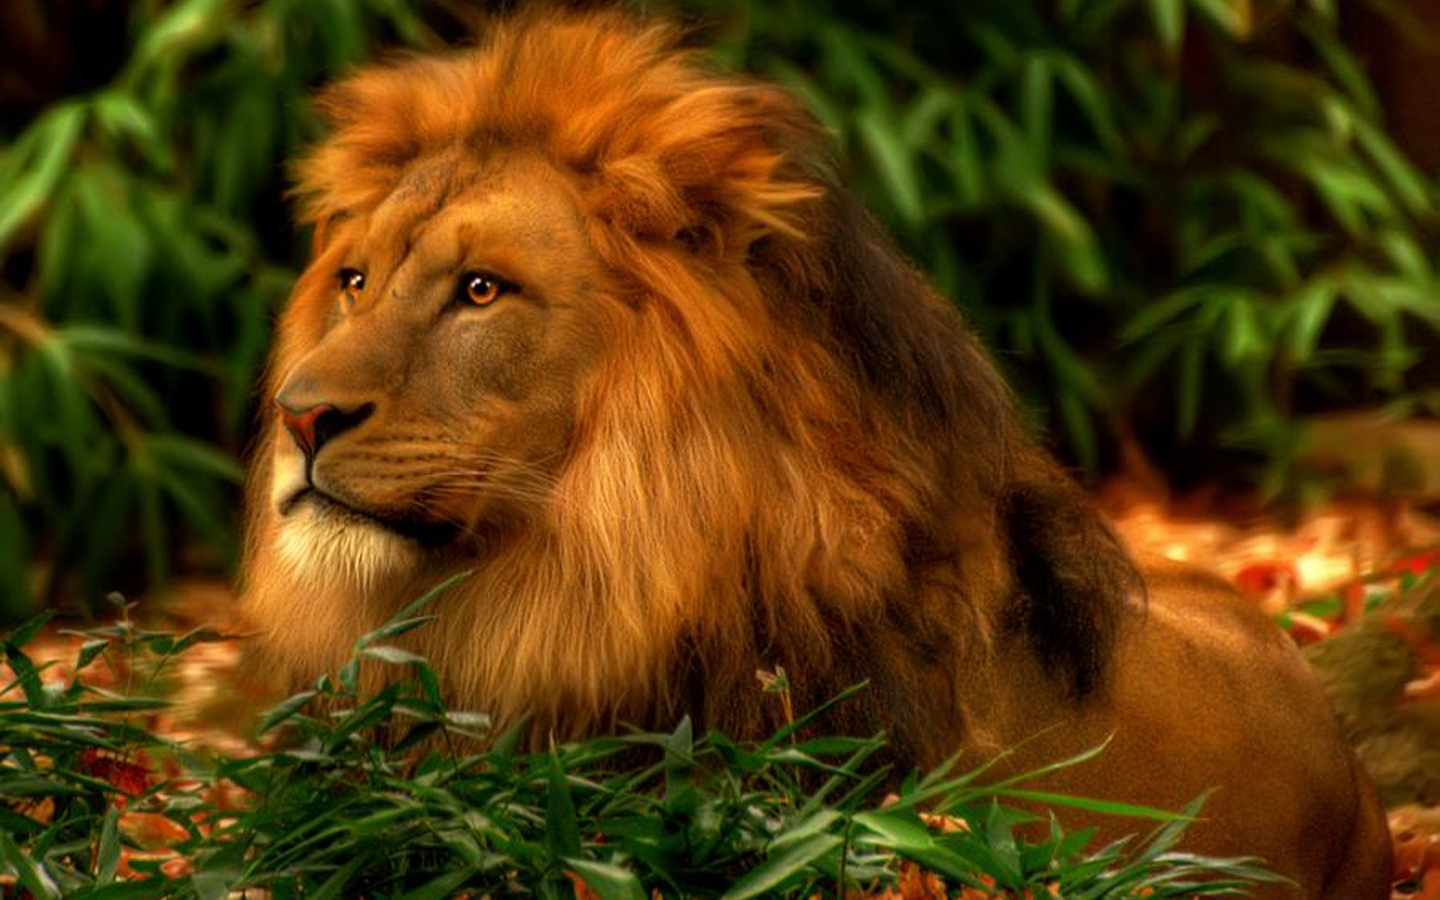 Cool Lion Desktop Wallpaper wallpaper Cool Lion Desktop Wallpaper hd 1440x900